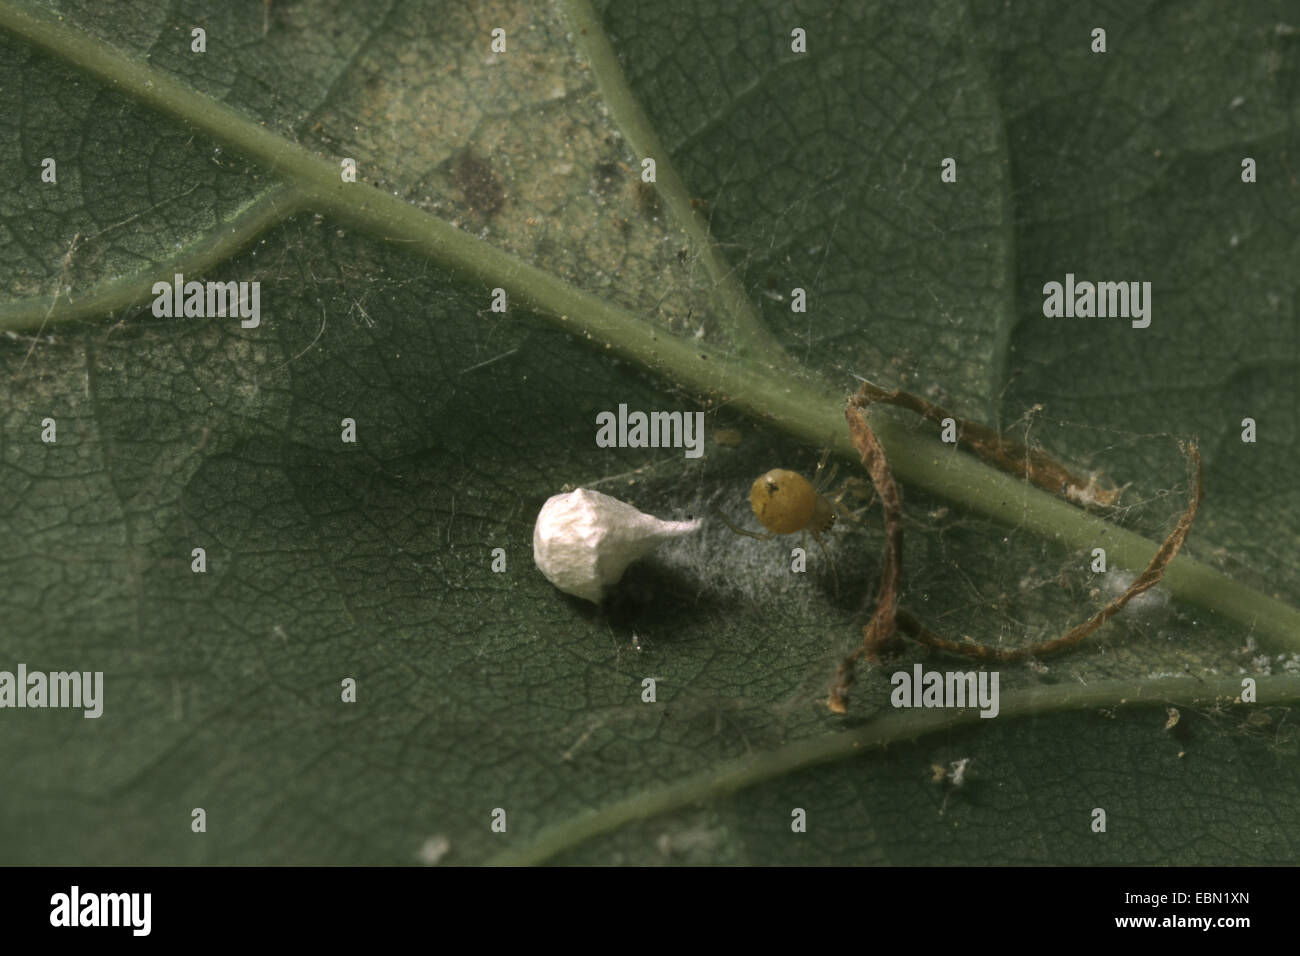 comb-footed spider (Paidiscura pallens, Theridion pallens), spider with cocoon on the underside of a leaf - Stock Image